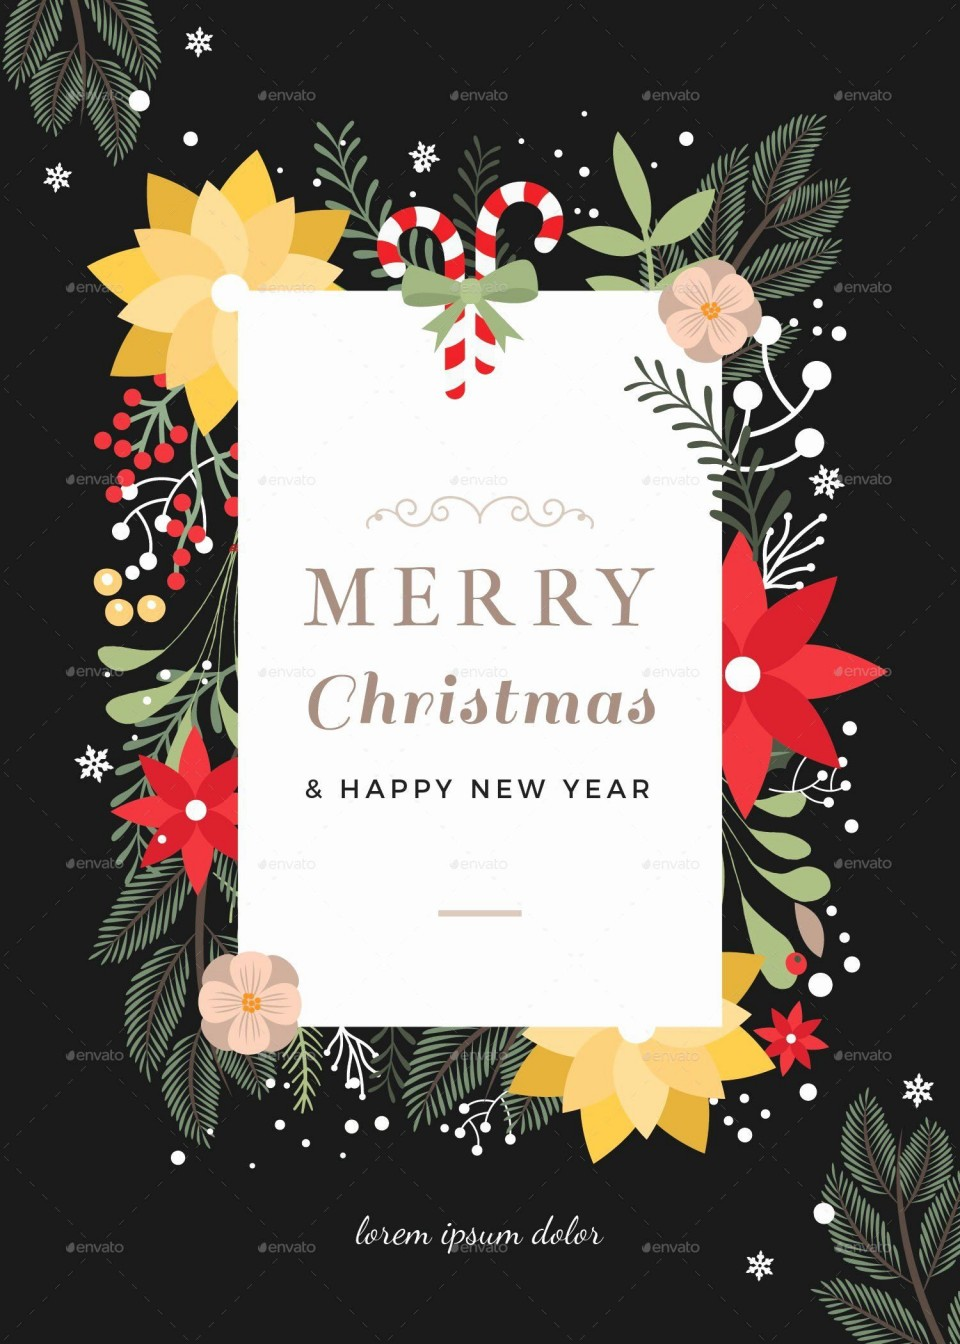 003 Phenomenal Christma Card Template Free Download Photo  Xma Place960